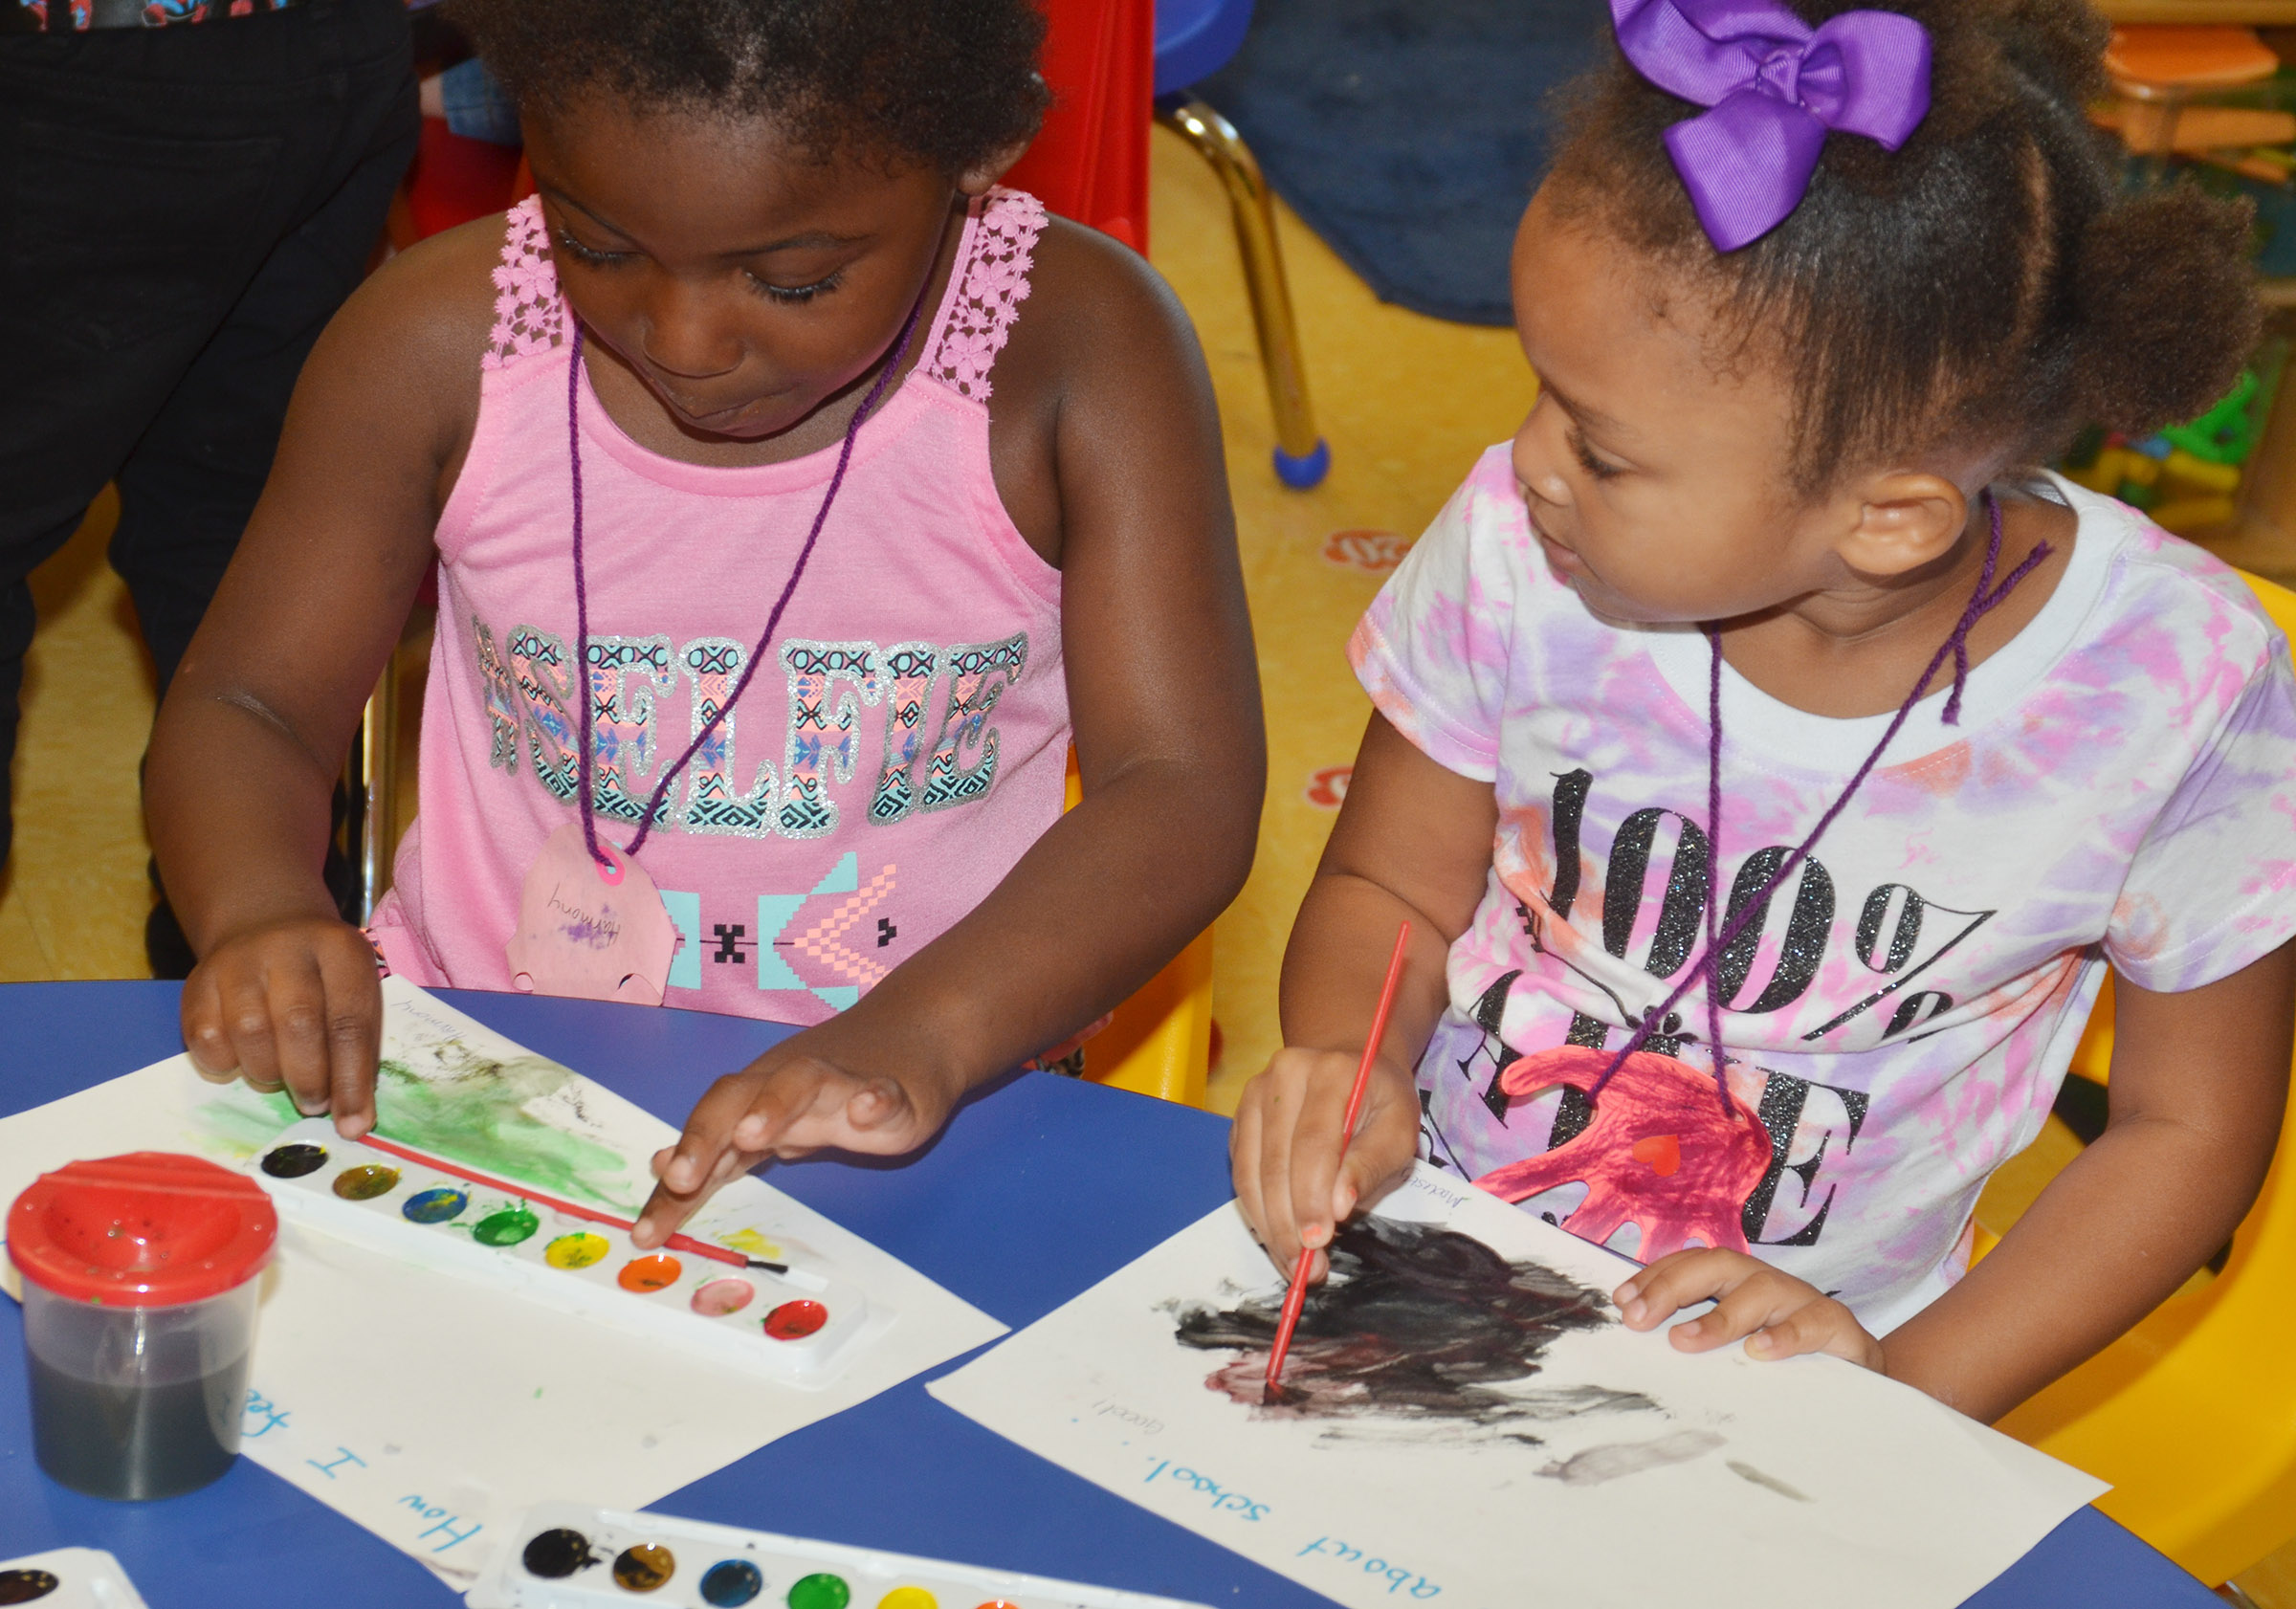 CES preschool students Harmony Brown, at left, and Modesty Taylor talk as they paint how they felt about coming to preschool.